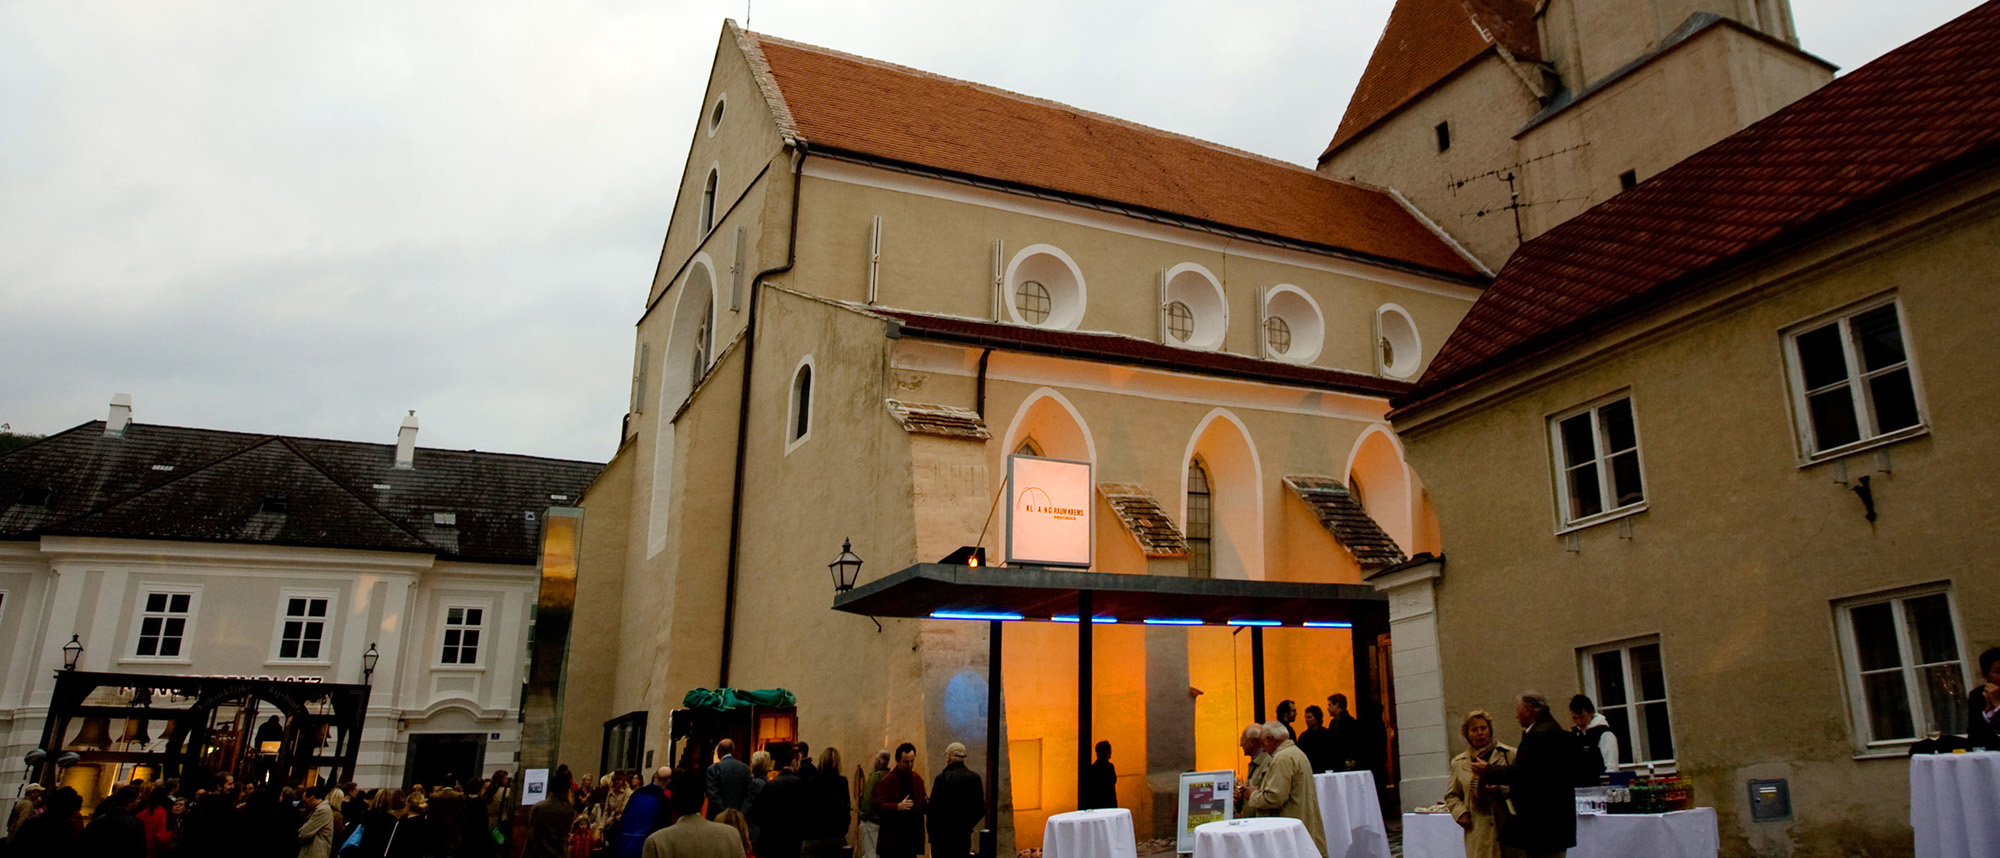 Minoritenkirche Krems © Helmut Lackinger